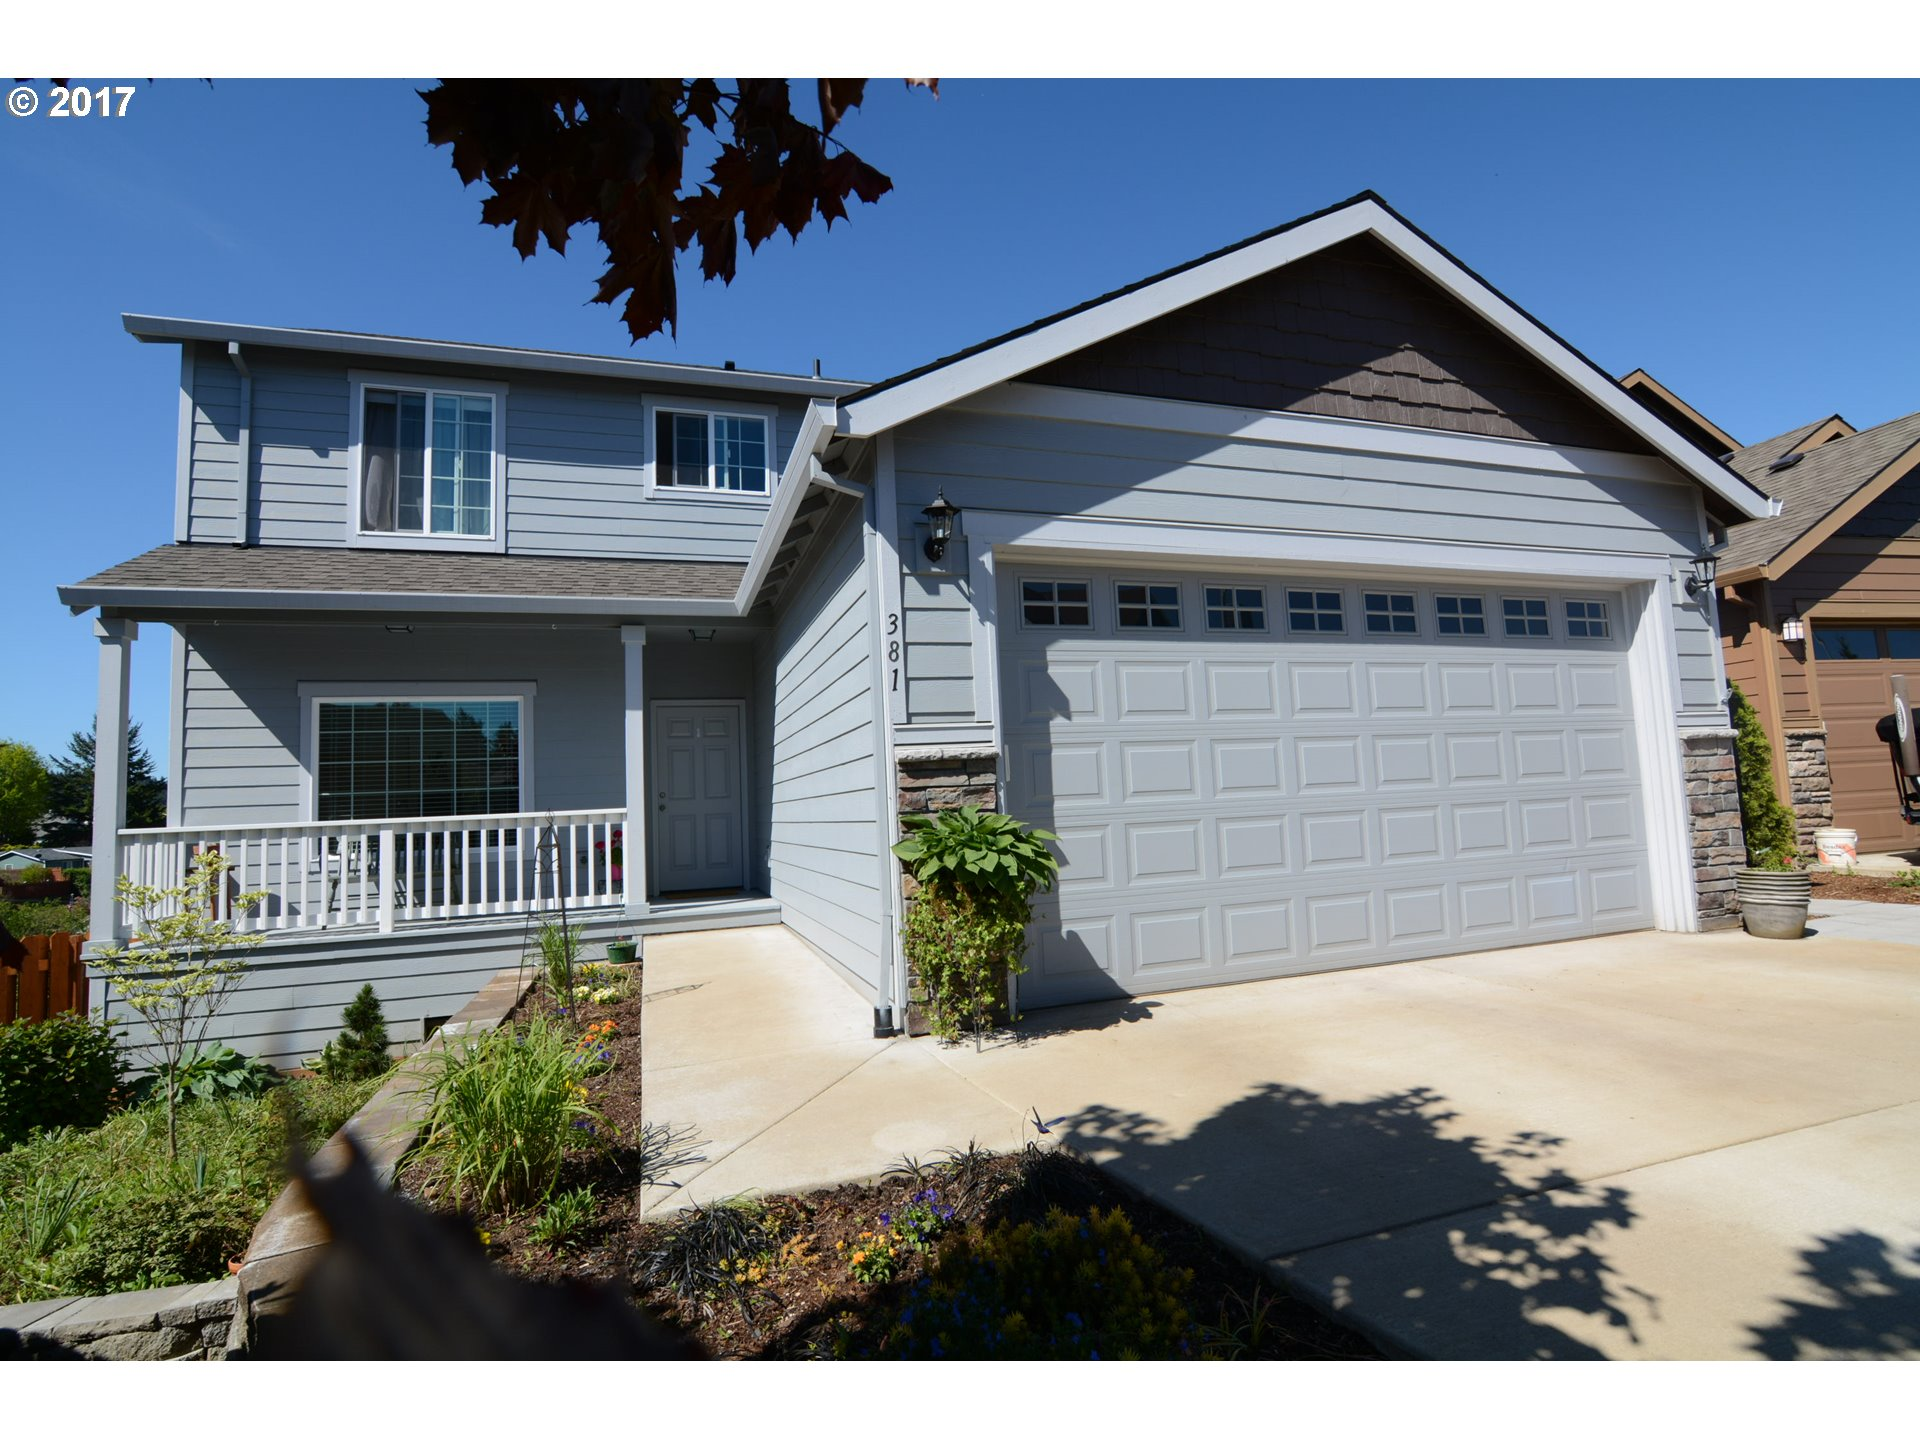 381 SE REGAN HILL LOOP Estacada, OR 97023 - MLS #: 17268651